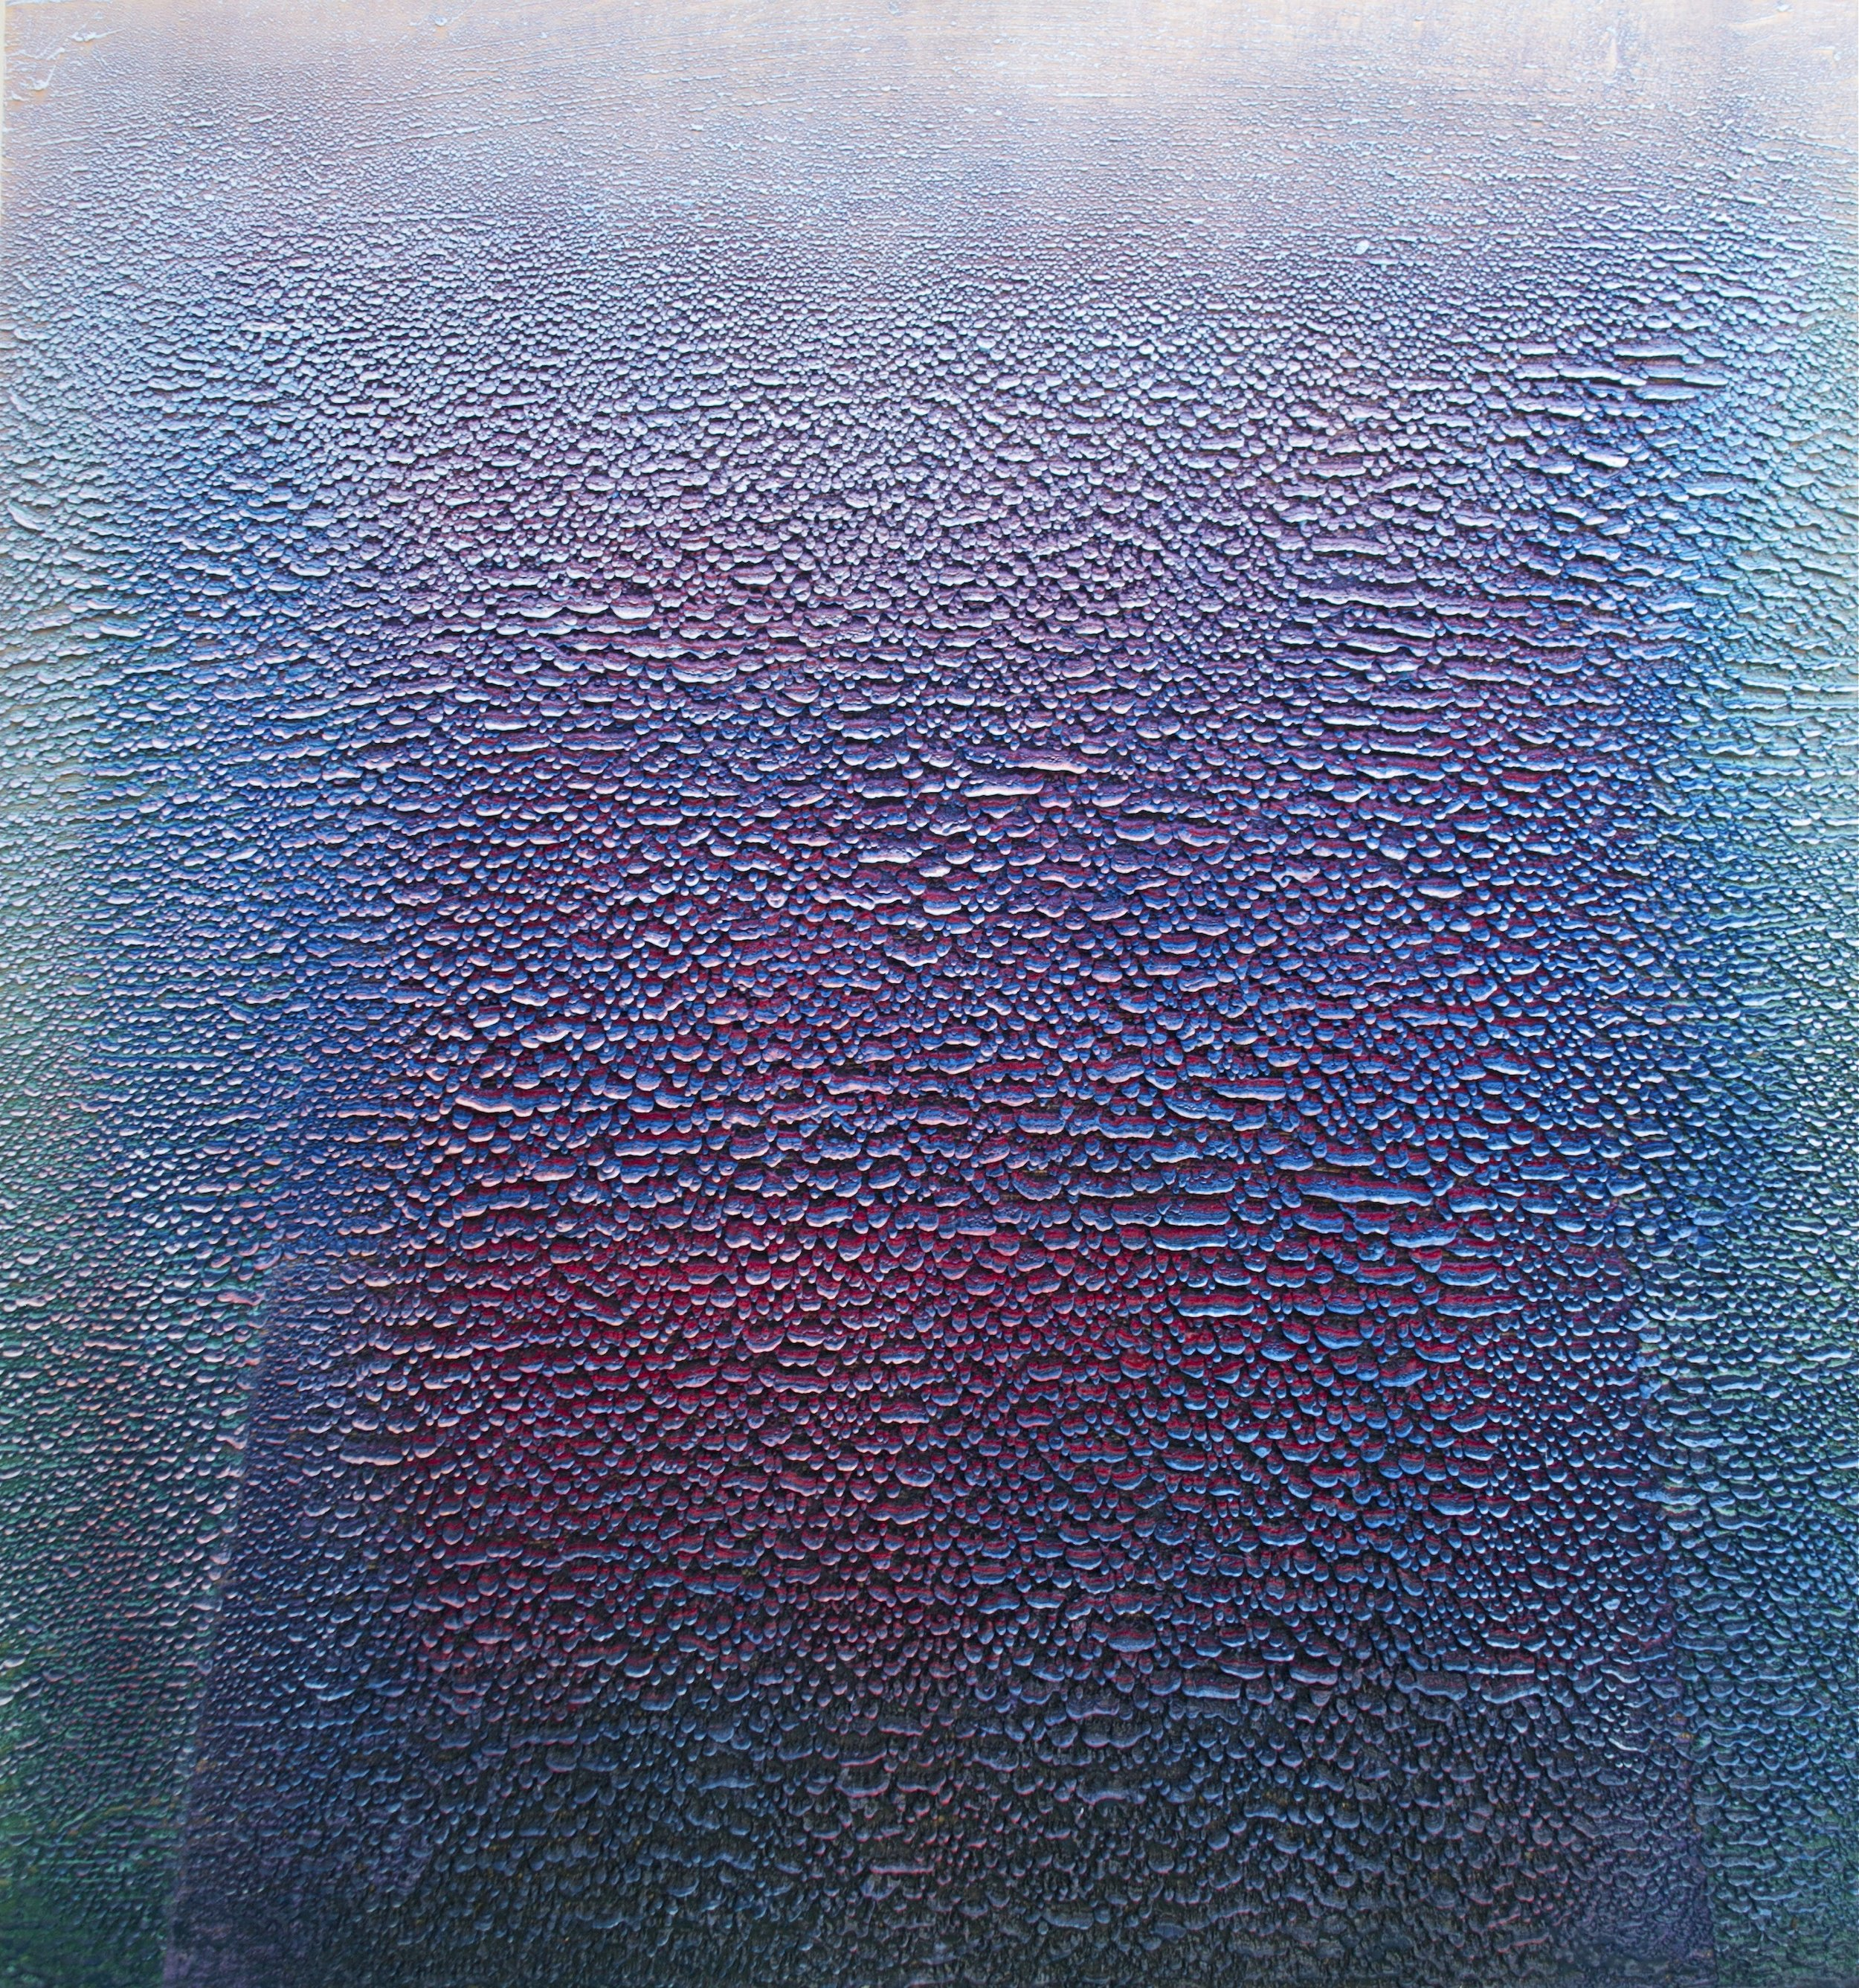 Rowena Boyd   Punta Cometa , 2018  Encaustic on board  85 x 80 cm